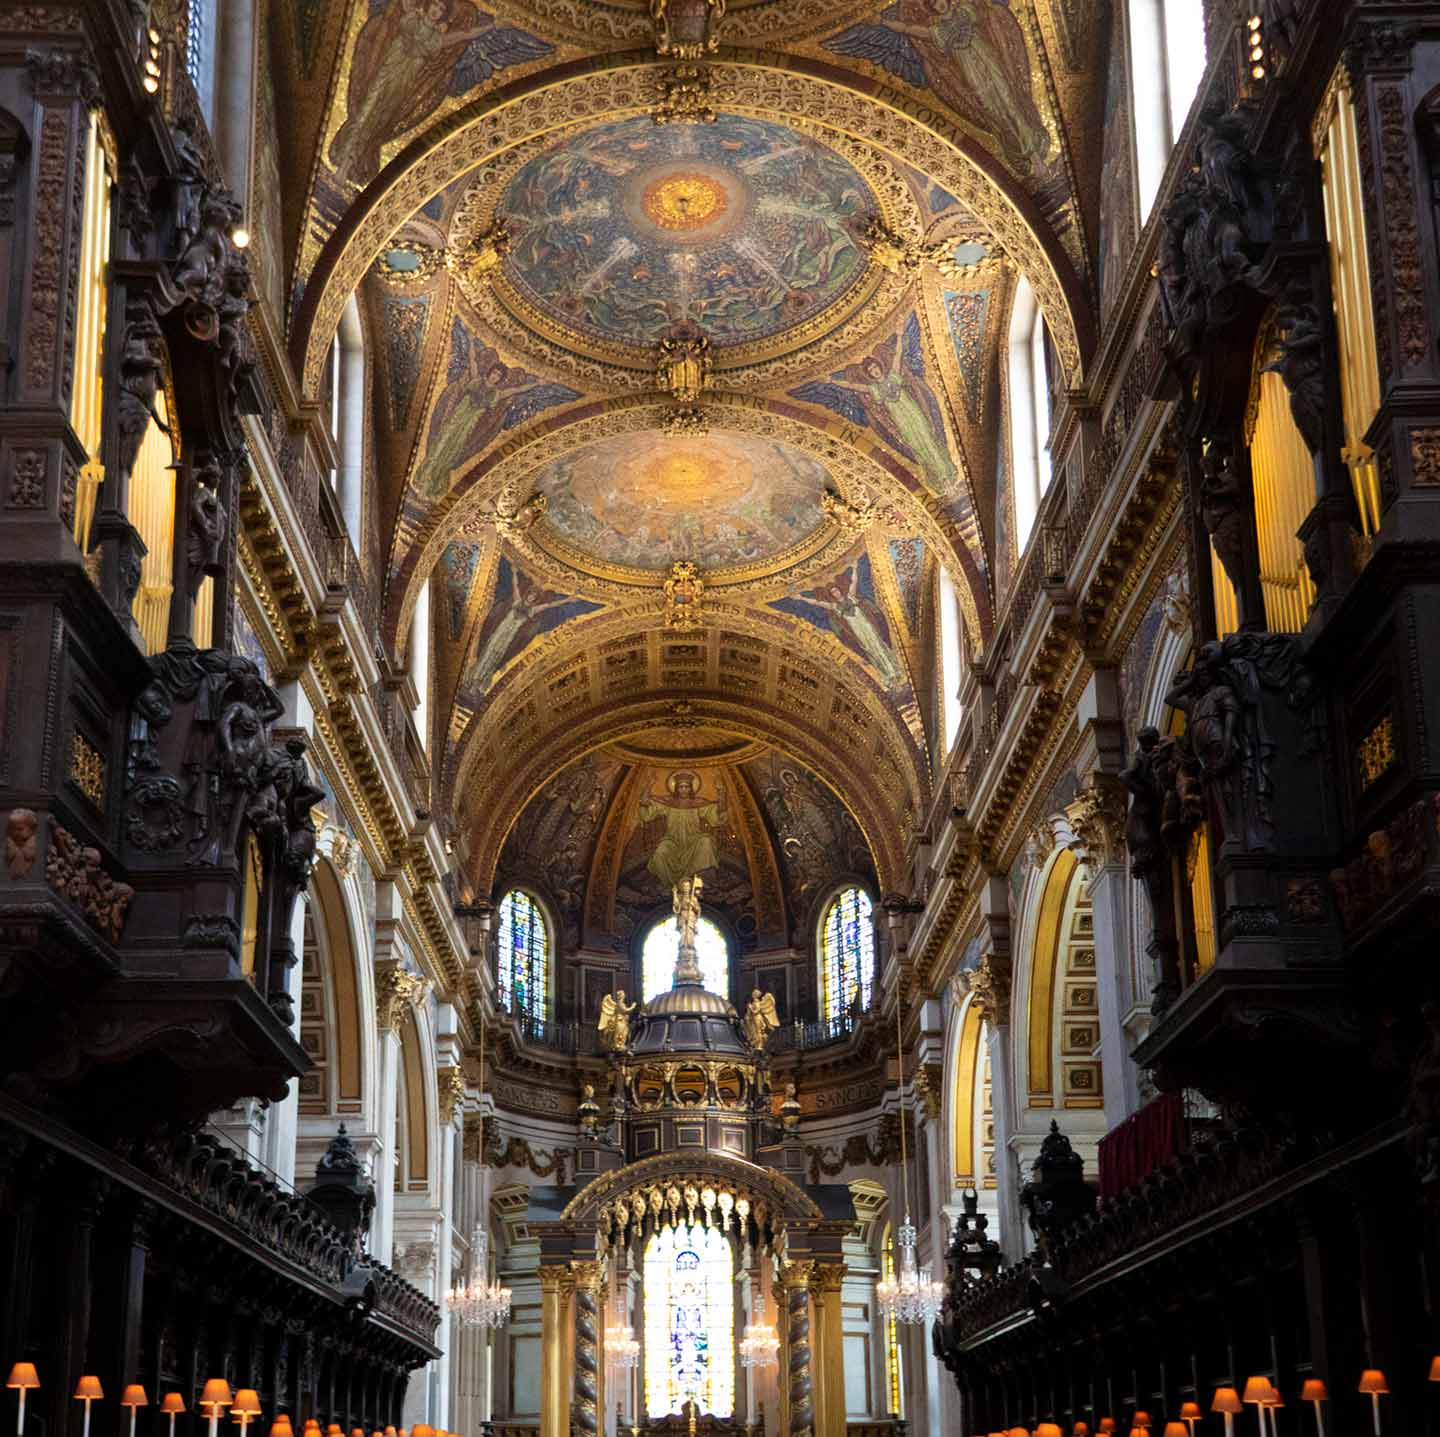 Image of the interior of St Paul's Cathedral in London